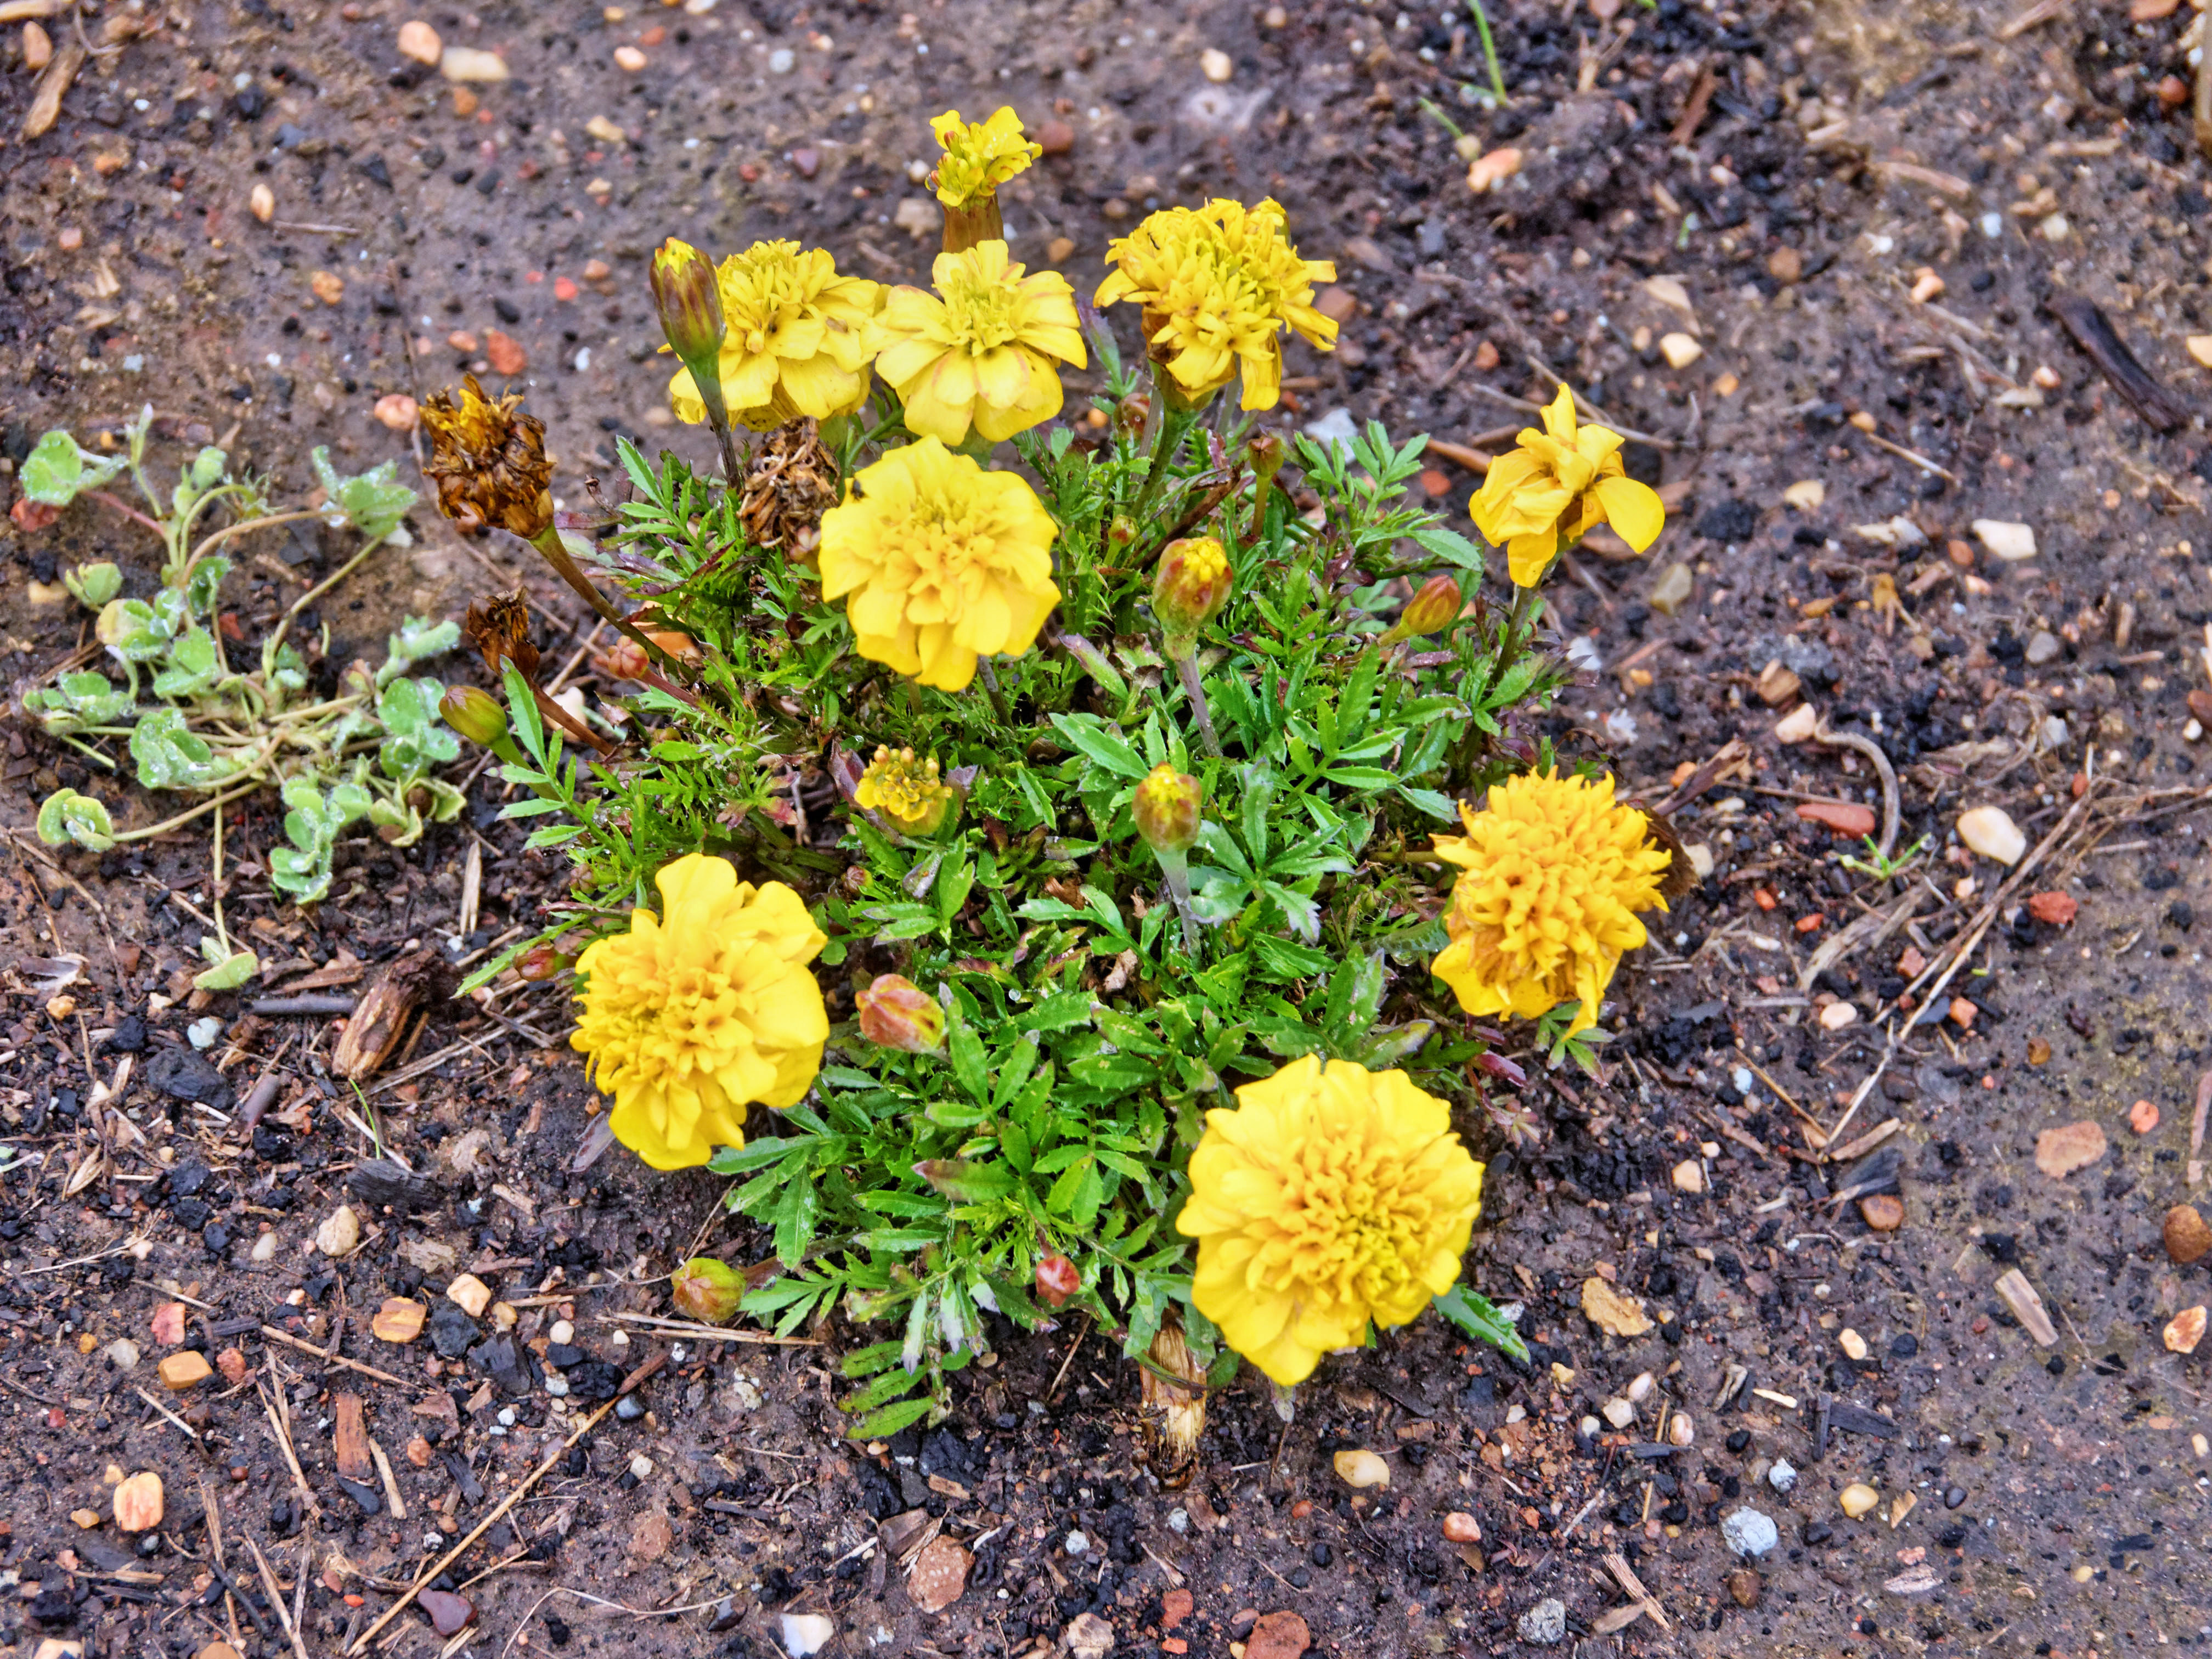 This should be Tagetes.jpeg.  Is it missing?